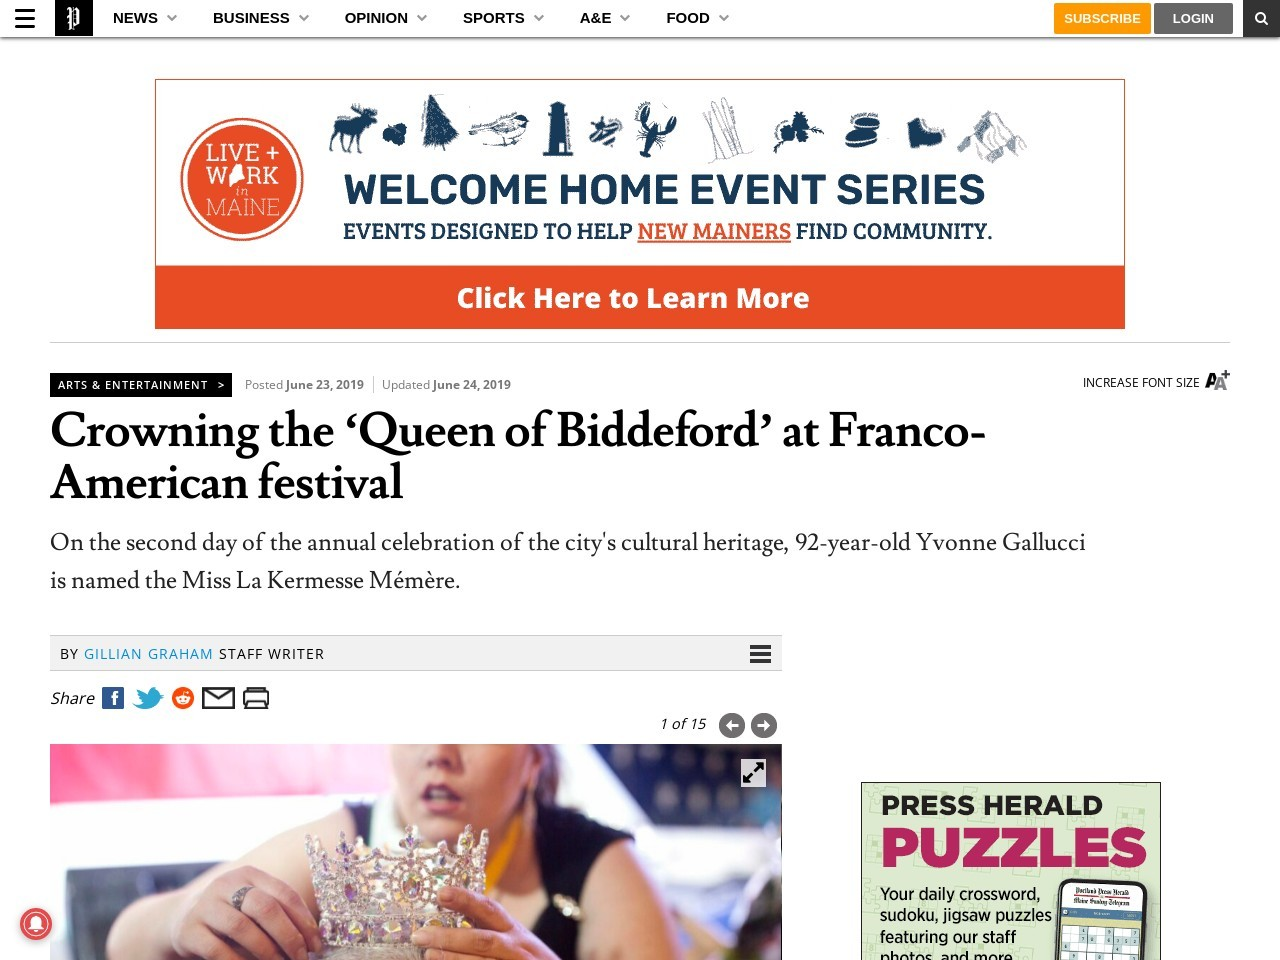 Crowning the 'Queen of Biddeford' at Franco-American festival